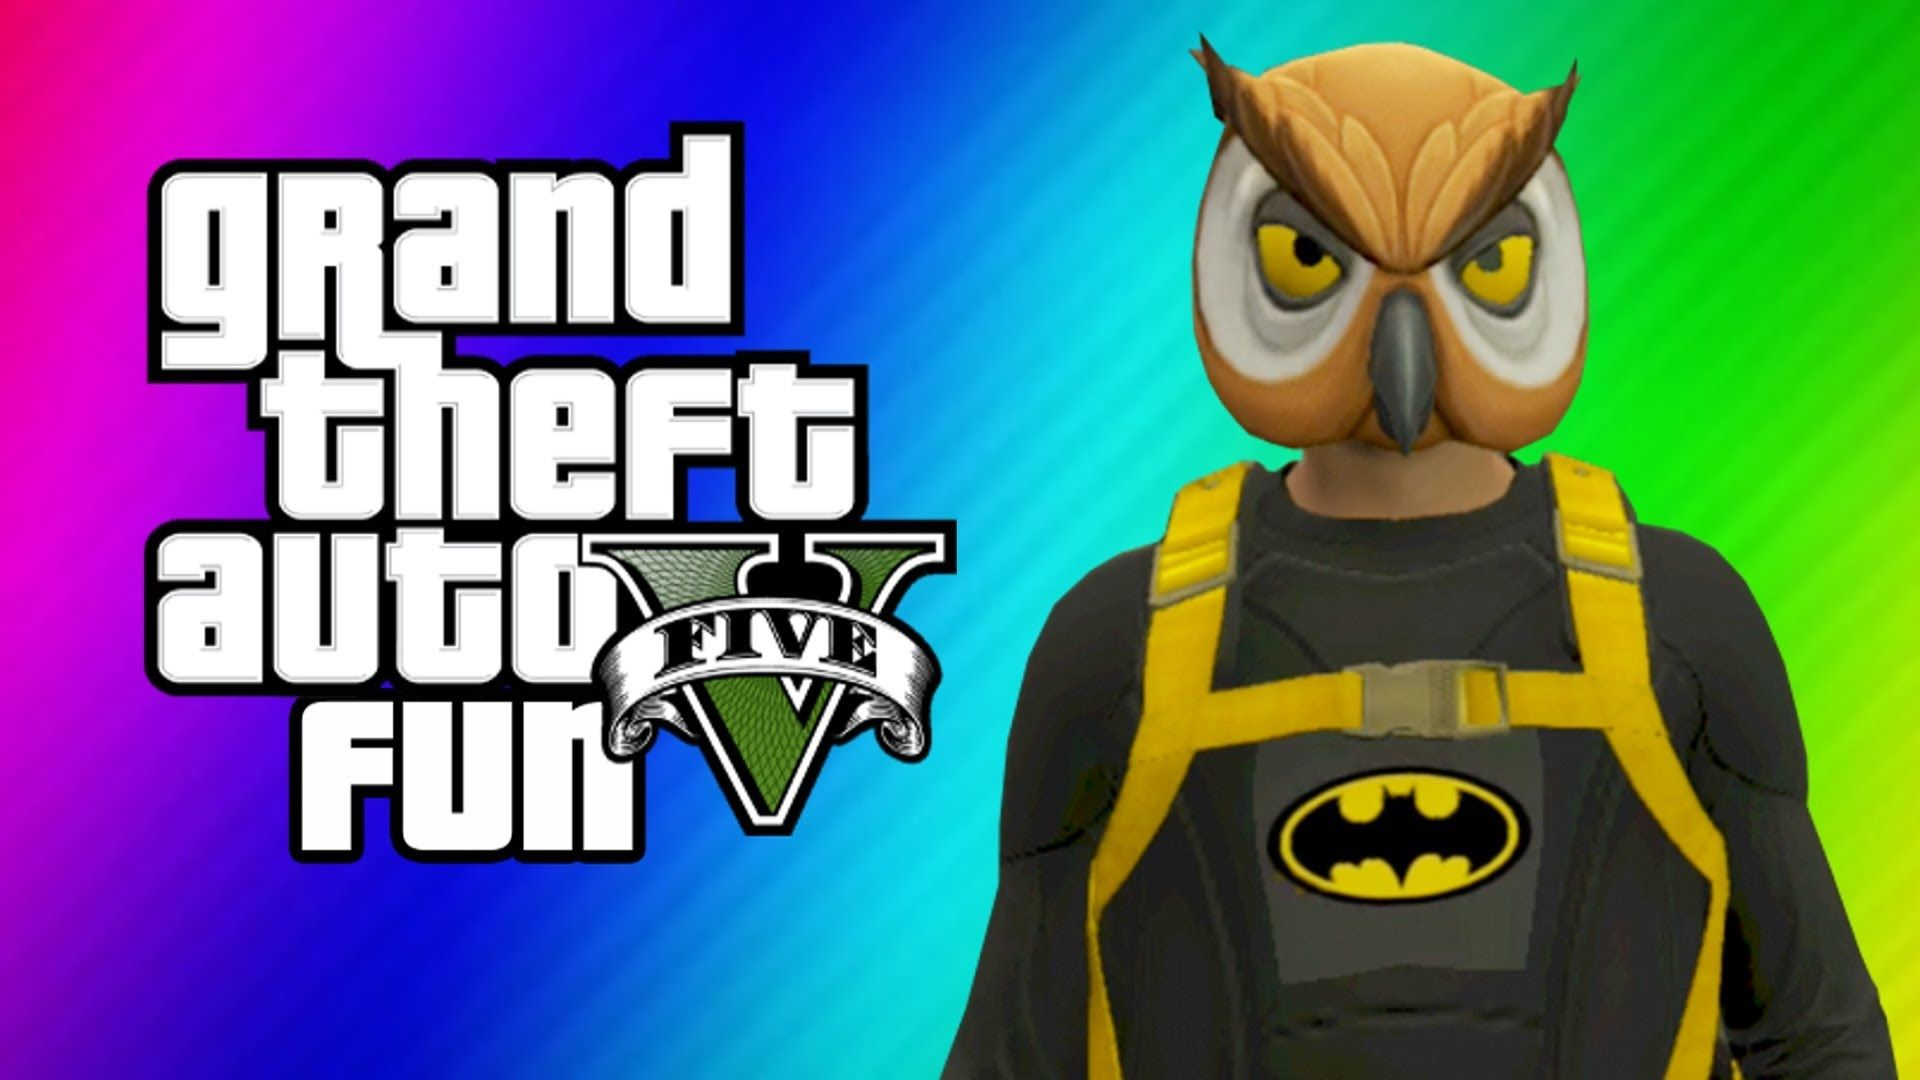 GTA V OWL MASK (VANOSS) #grandtheftauto Dun4Me is the